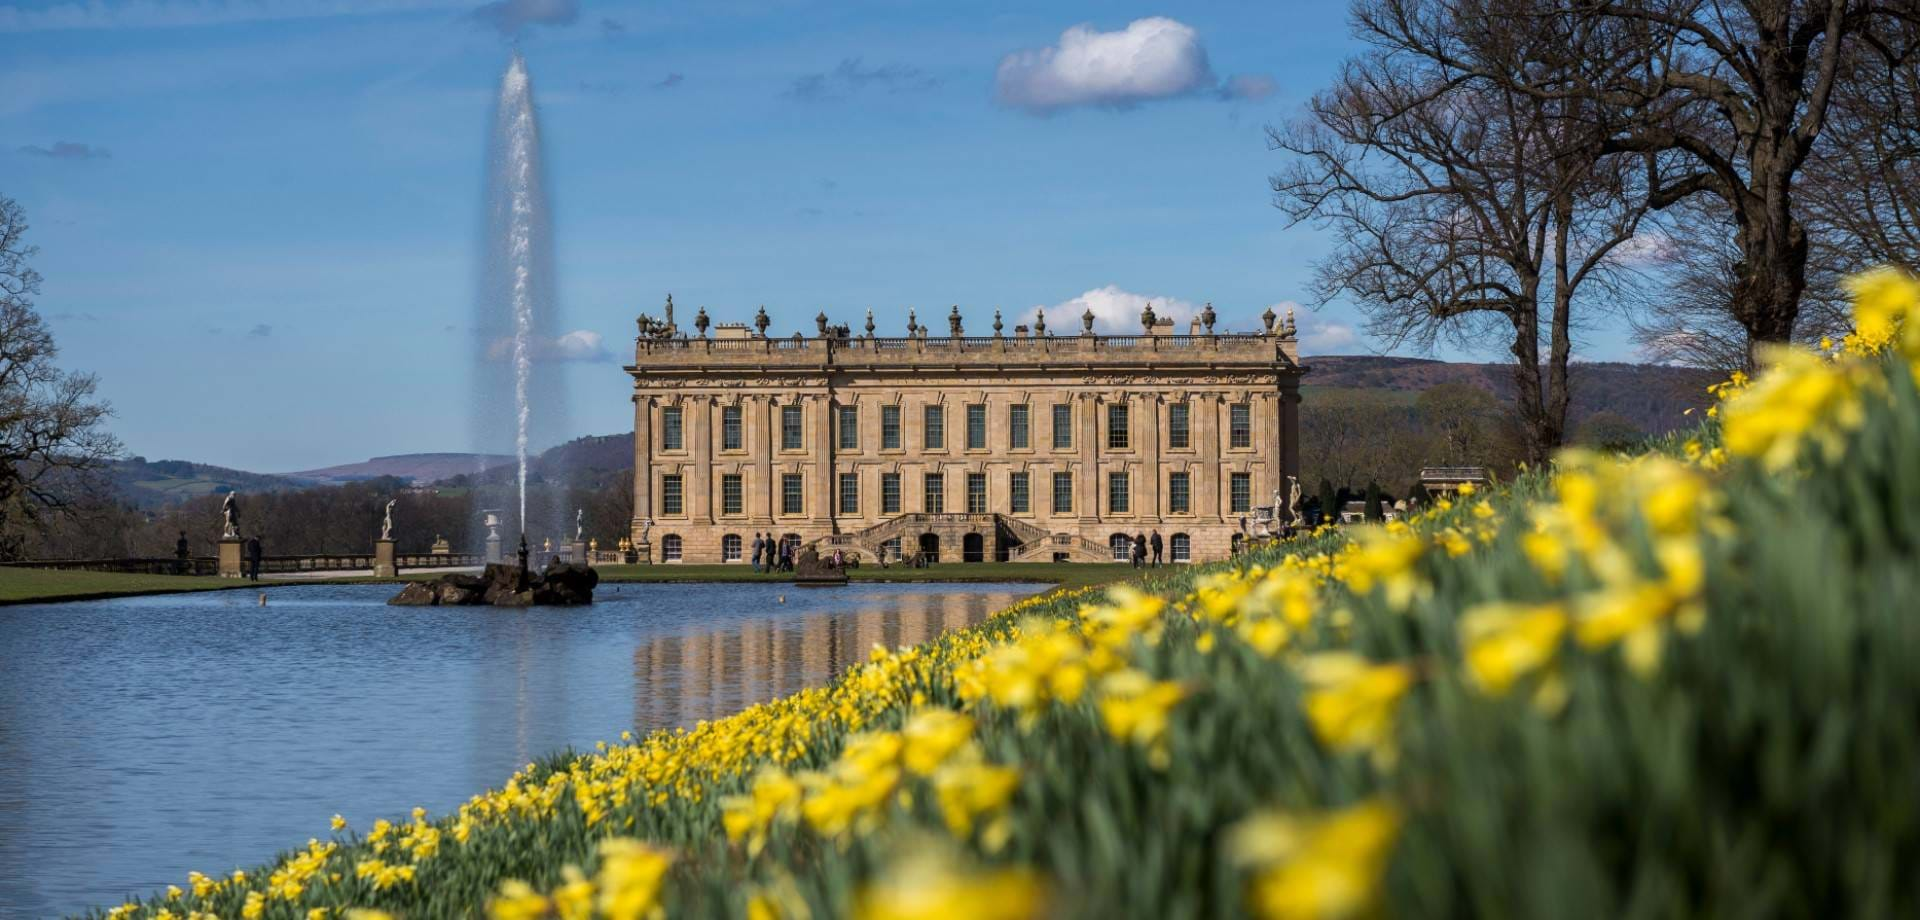 In the Chatsworth Garden: Springing to life